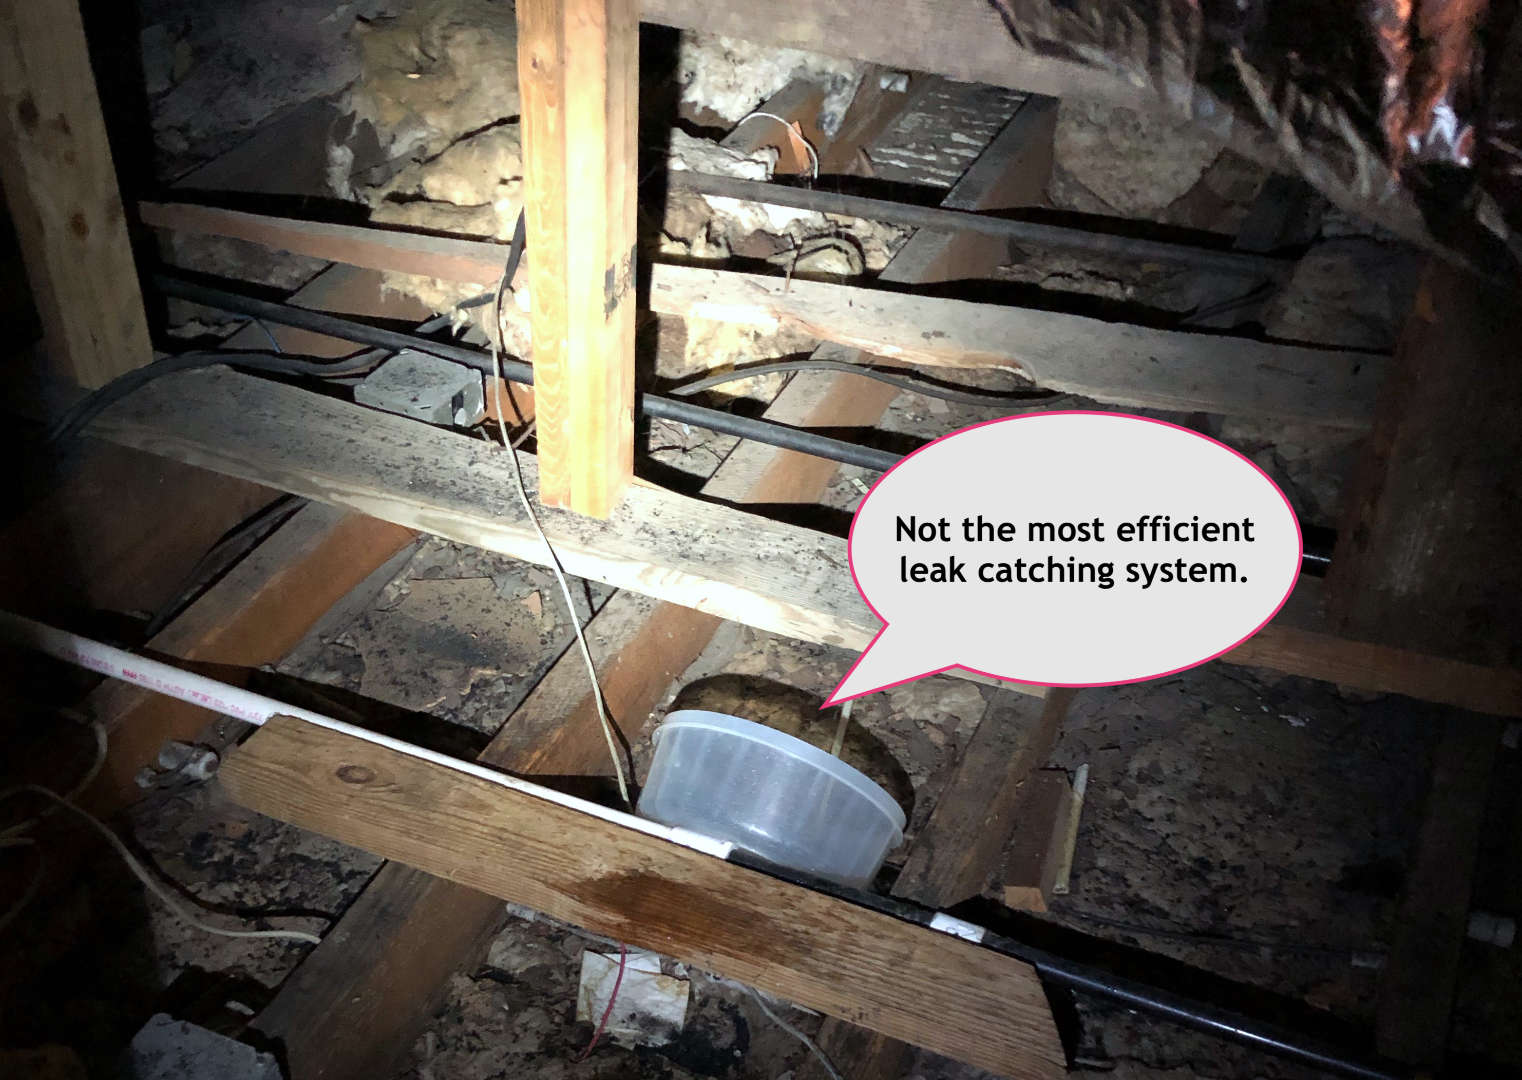 We'll be glad to not have to crawl around in the attic emptying leak-catching tubs out!